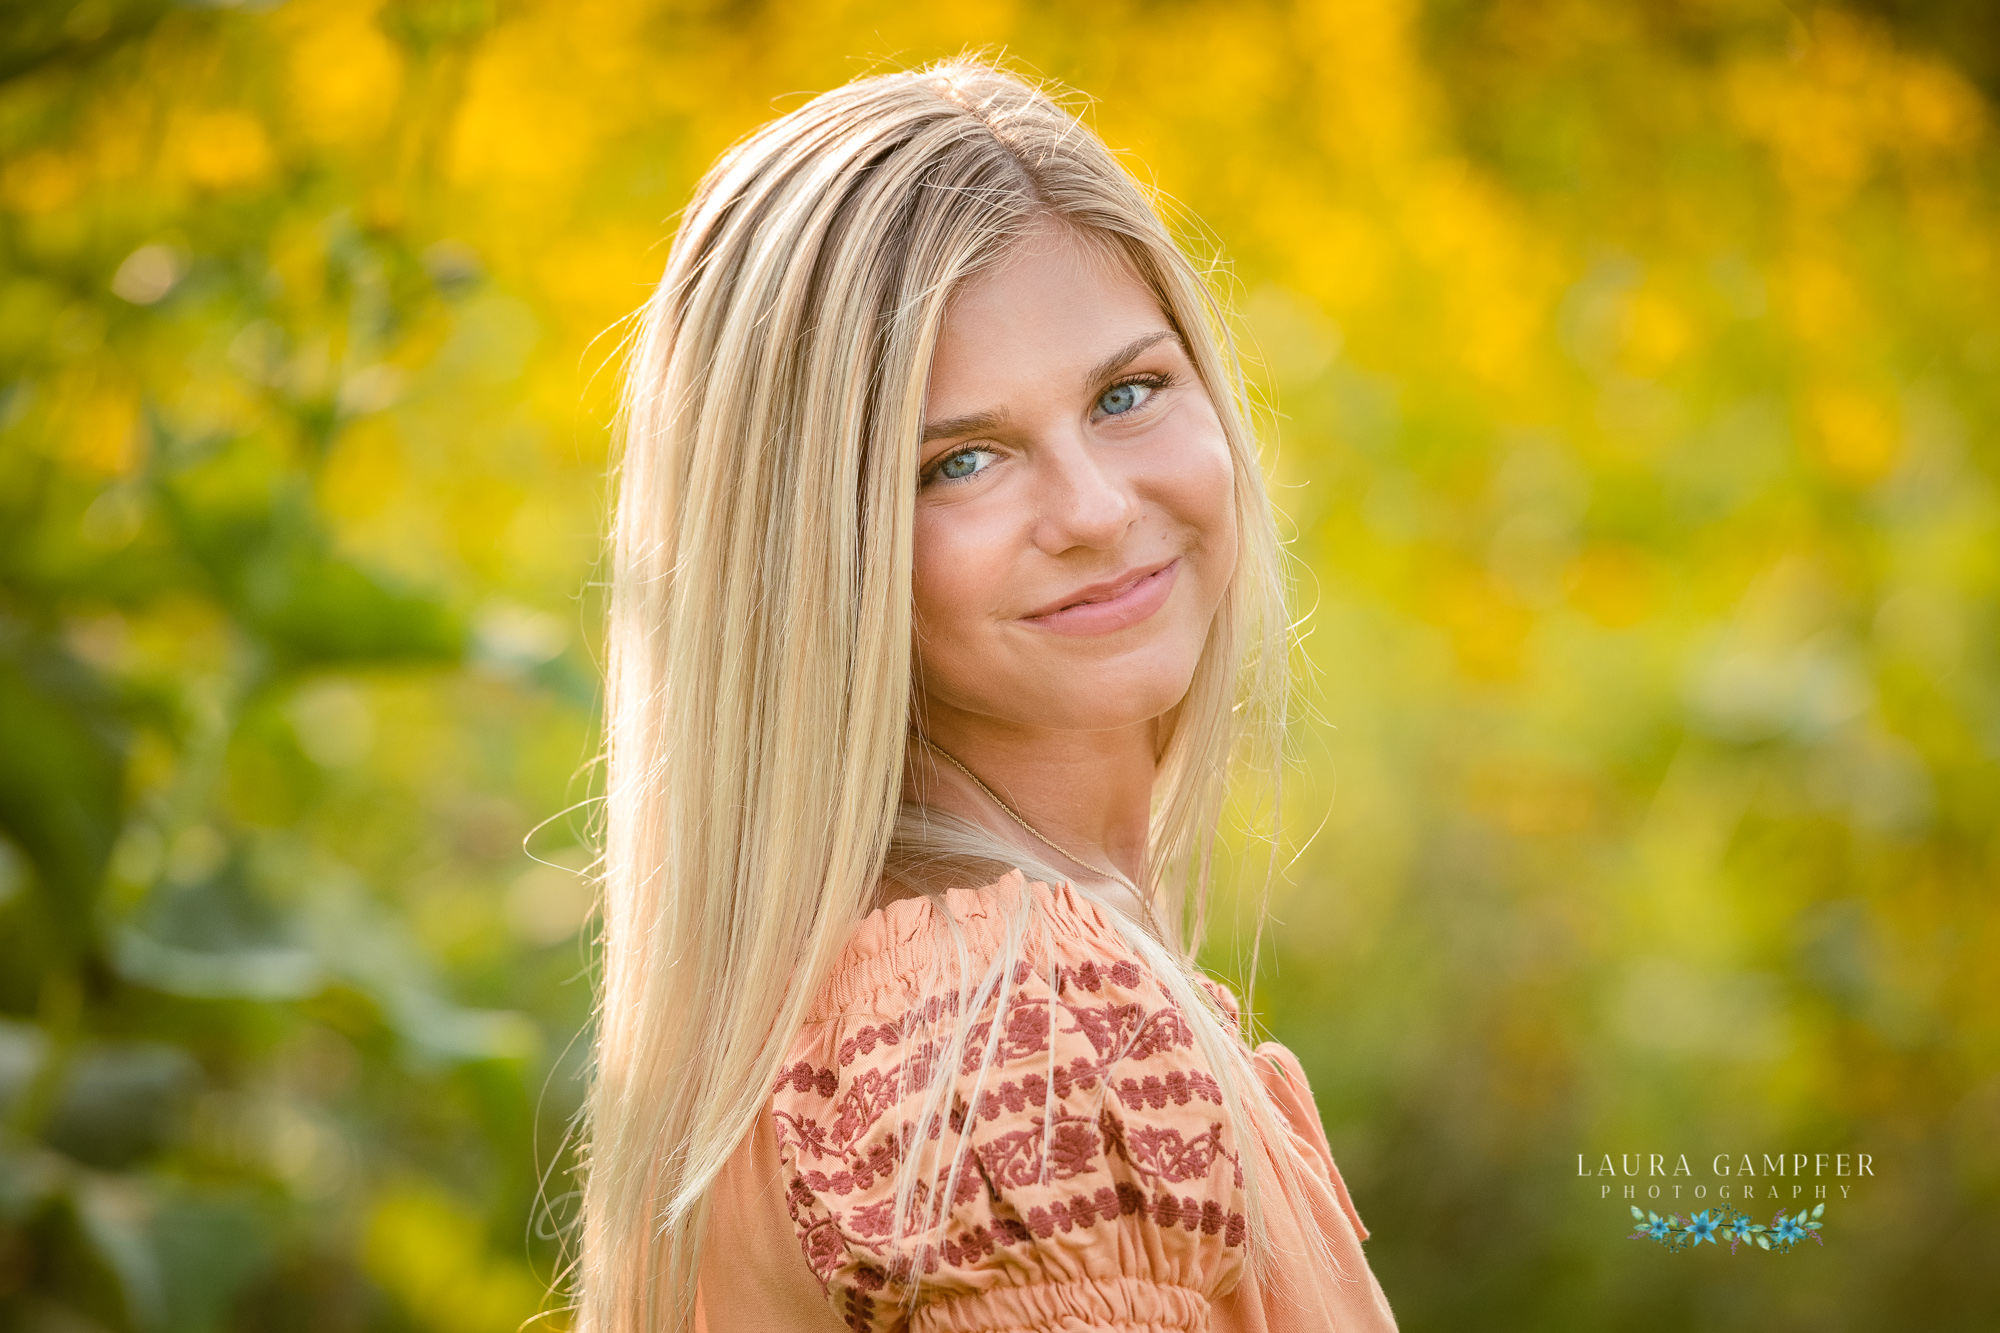 kane-county-illinois-high-school-senior-photography-laura-gampfer